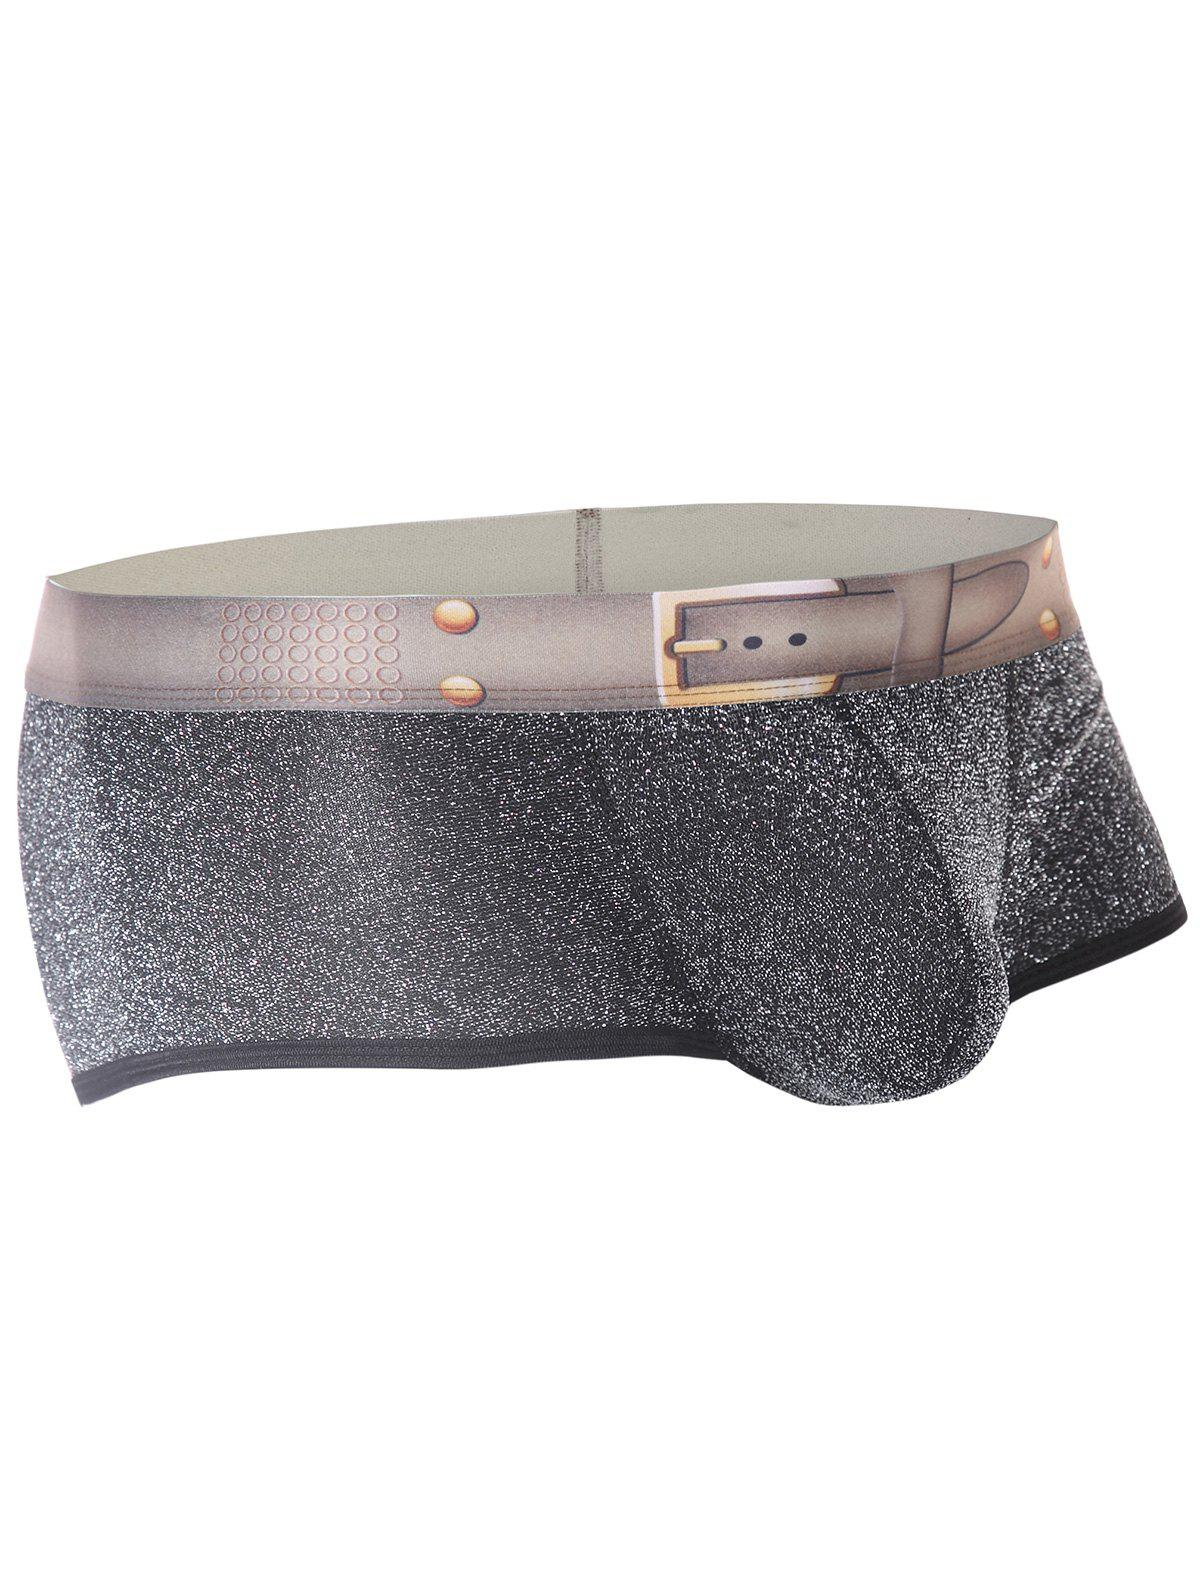 Twinkling Printed U Pouch Design Trunk - SILVER XL